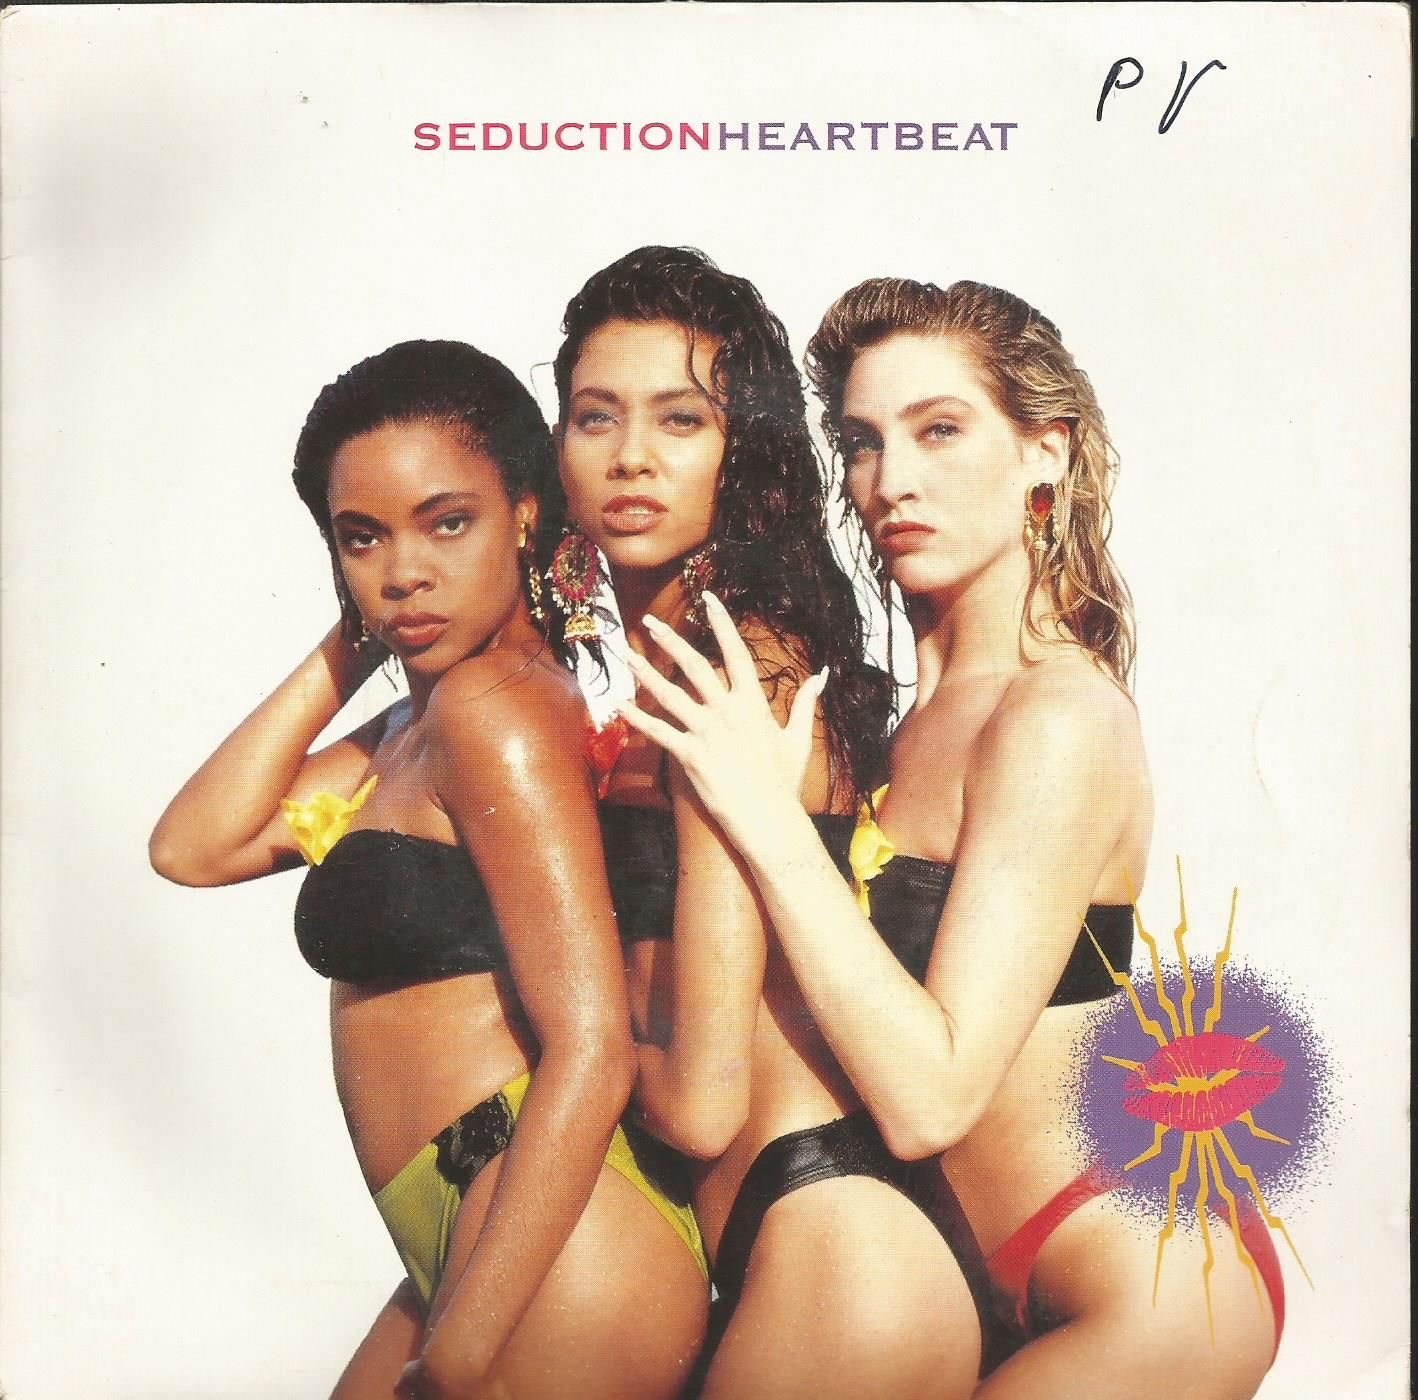 The single cover for 'Heartbeat' by Seduction